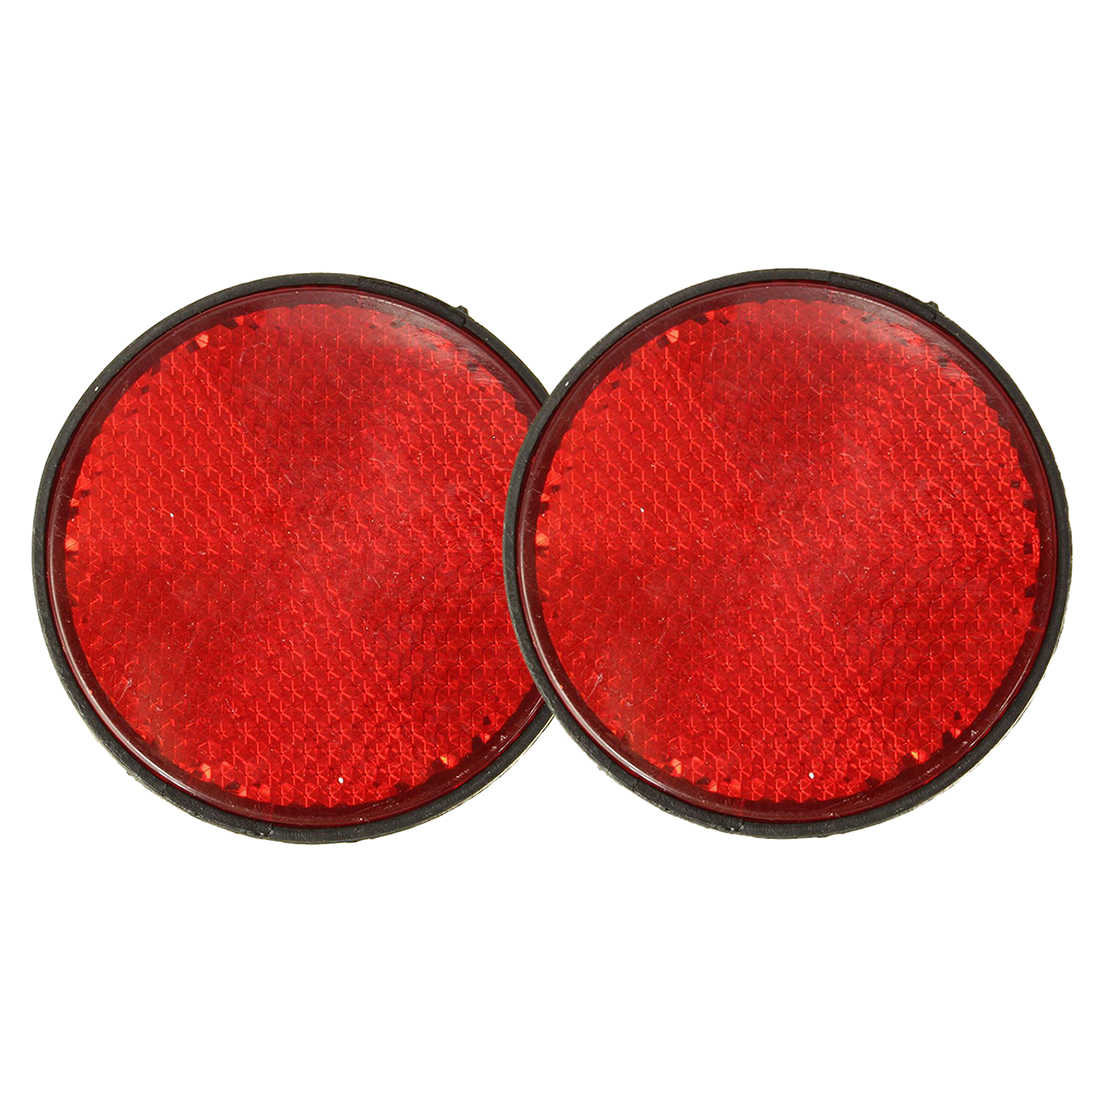 2pcs Round Red Reflector Universal For Motorcycle ATV 5.6*0.8cm